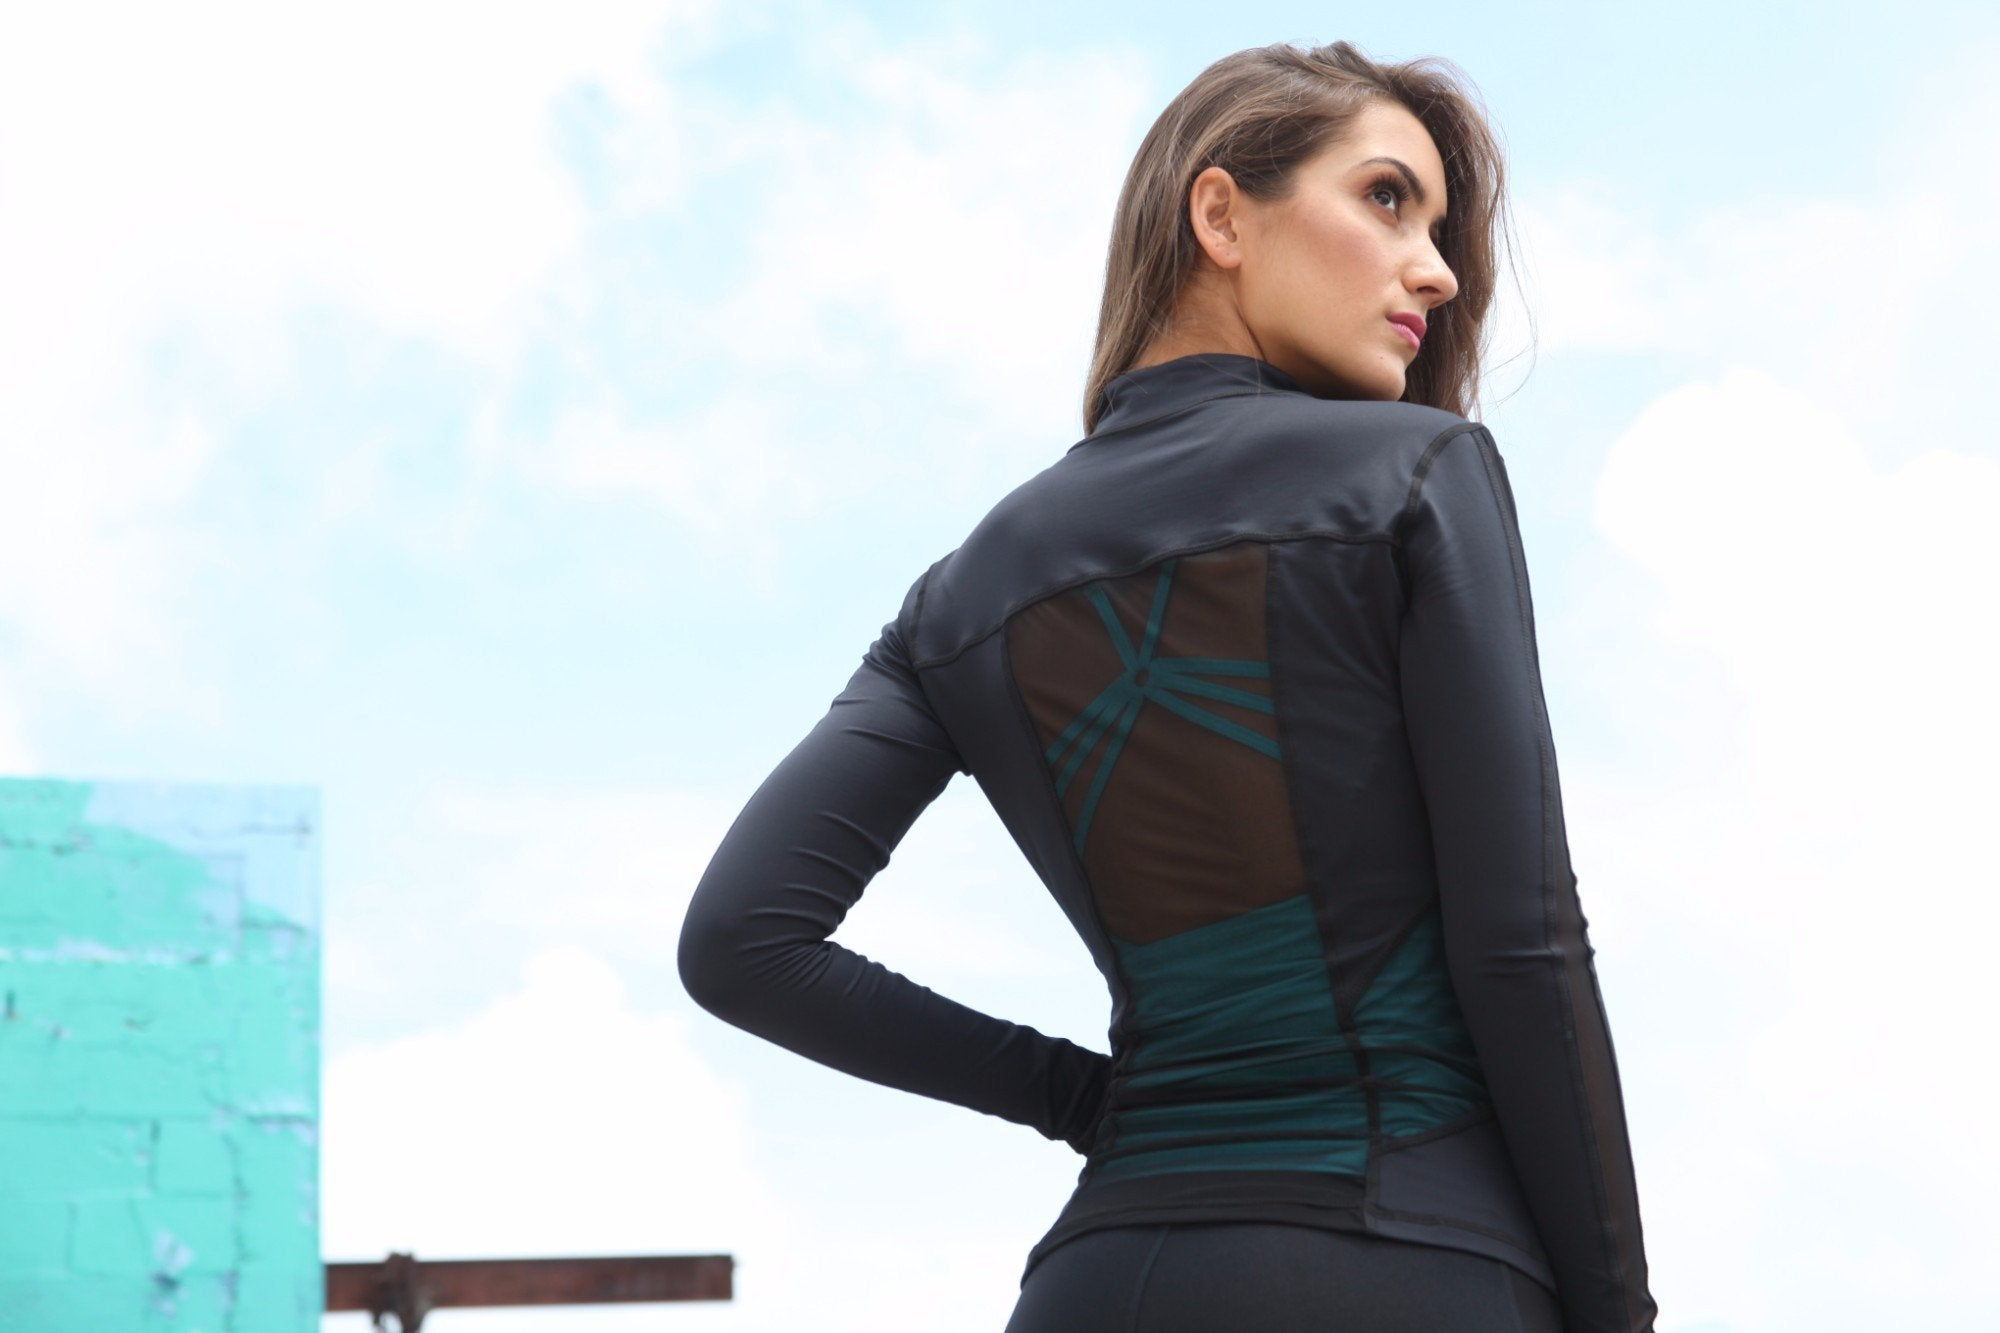 Designer Black Long Top with Long Sleeve J818 - Equilibrium Activewear - Image 5